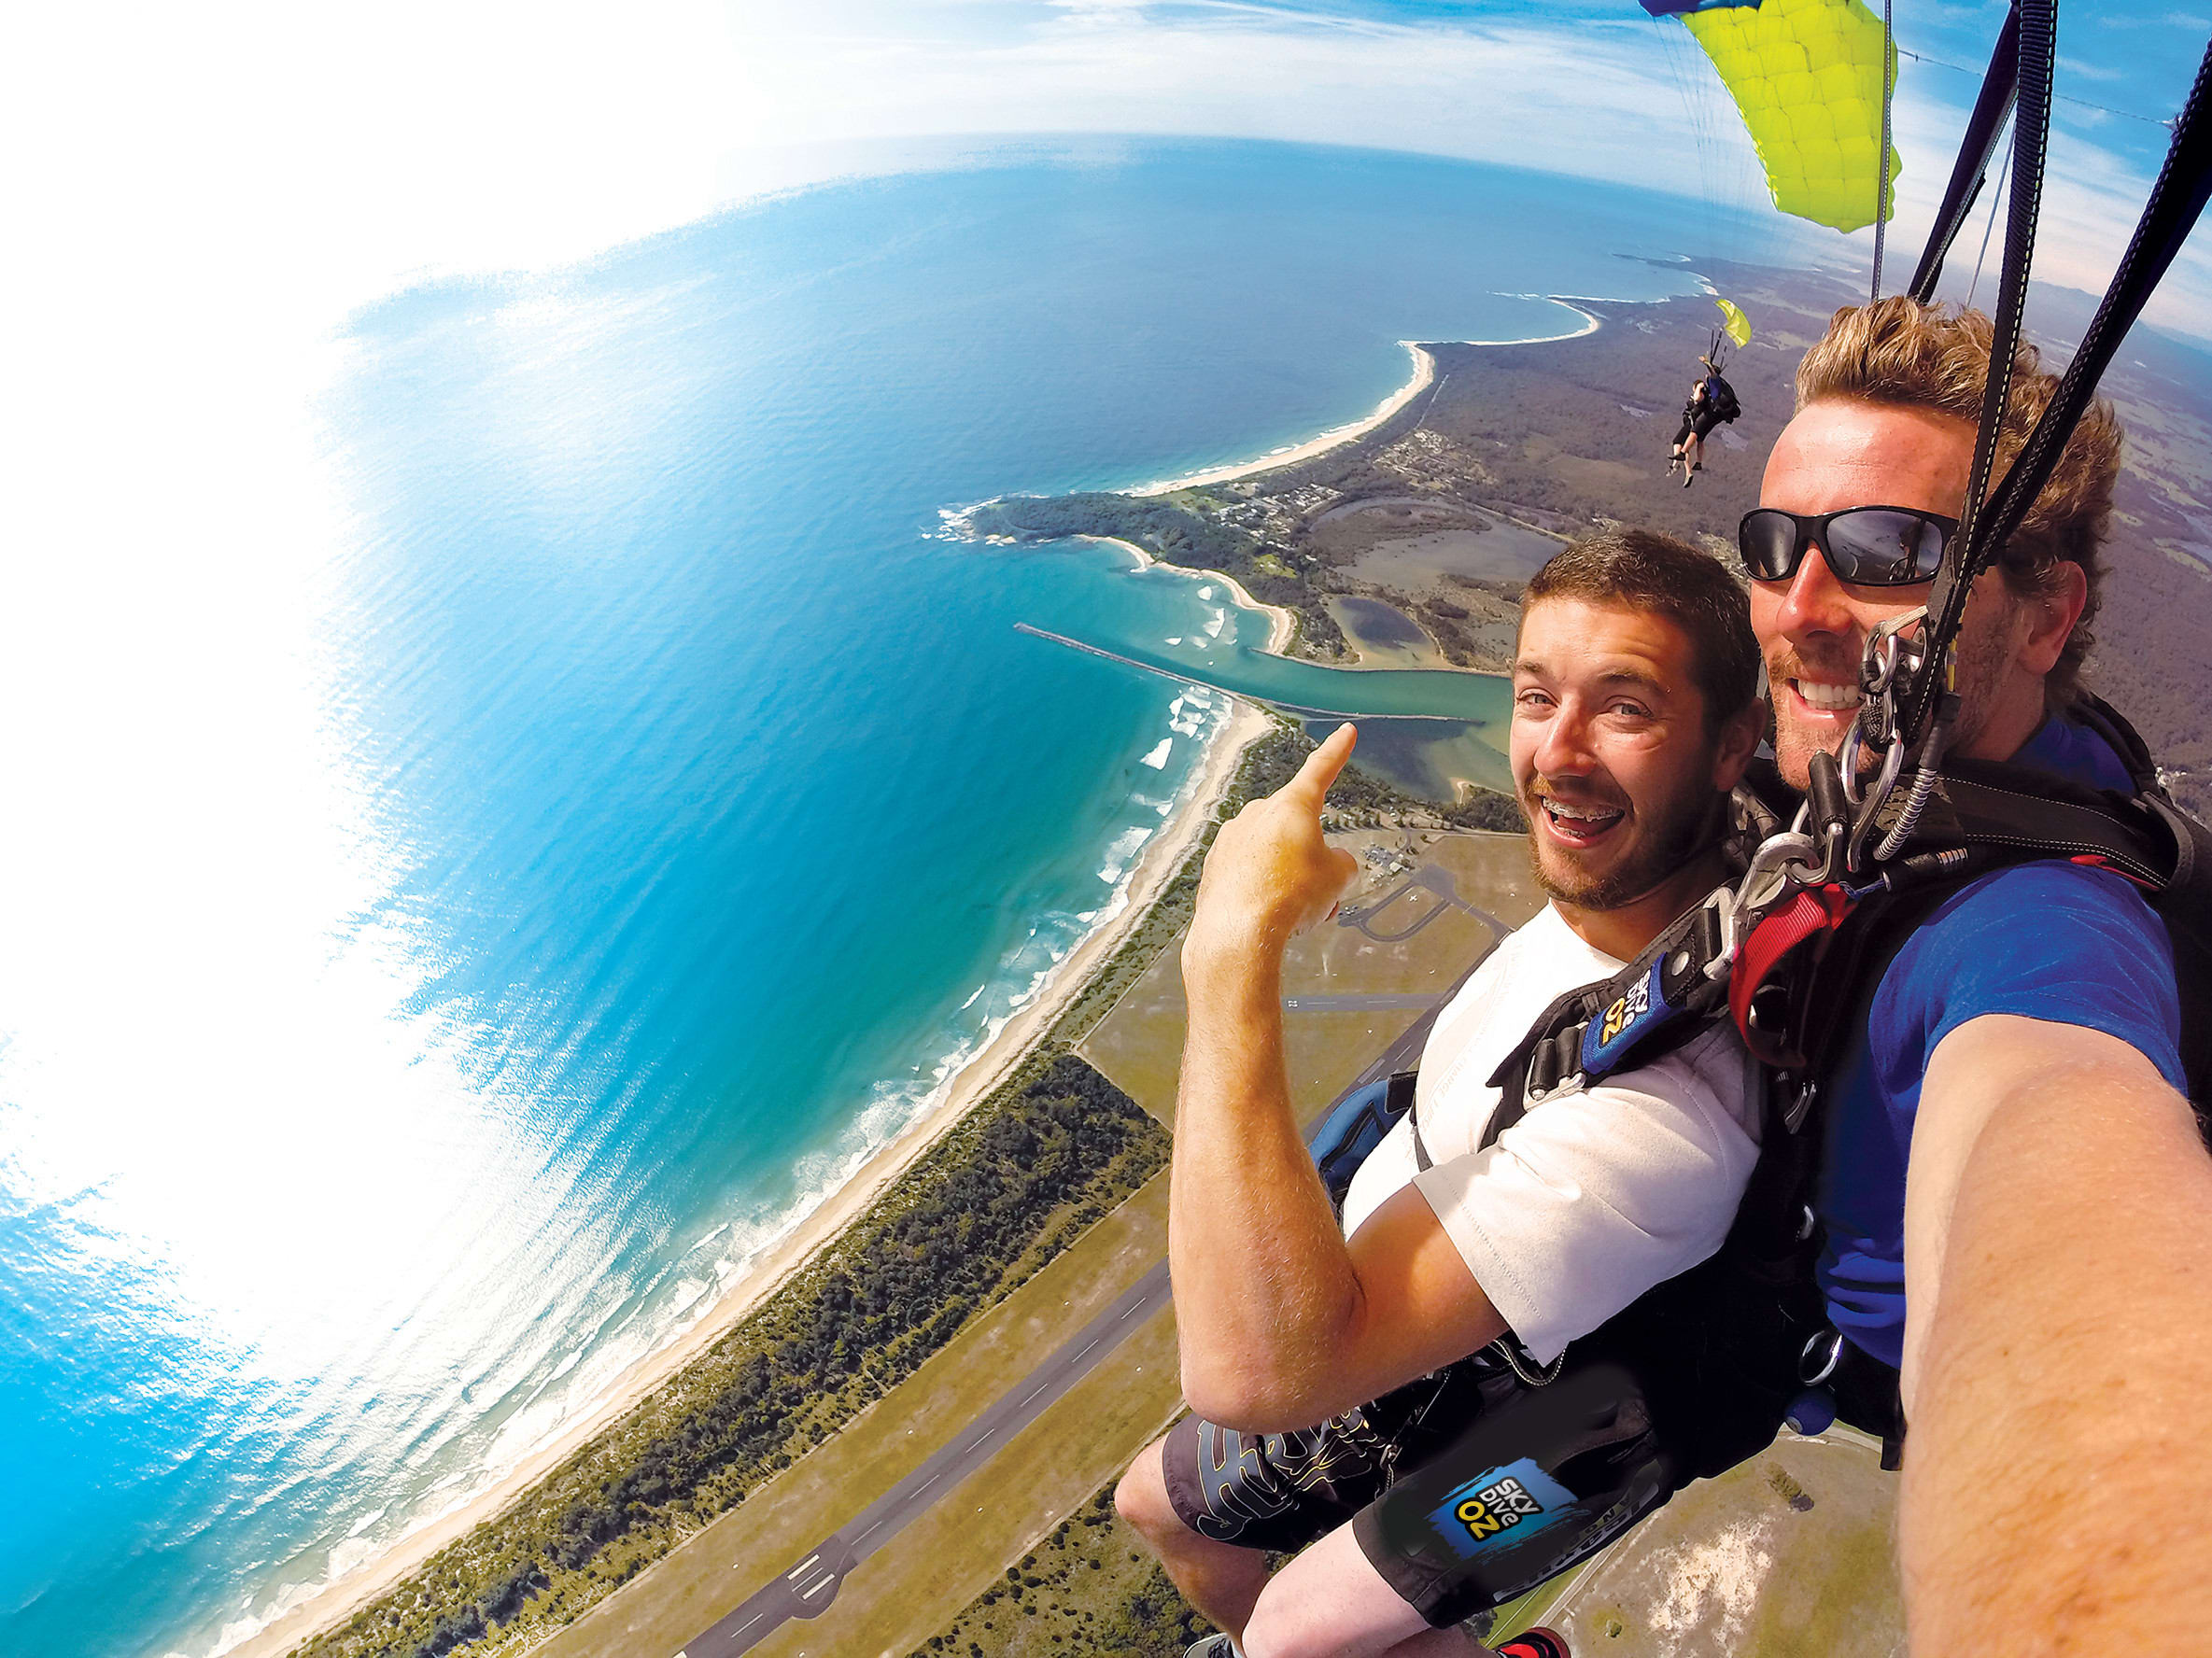 Tandem Skydive from 15,000ft - Batemans Bay